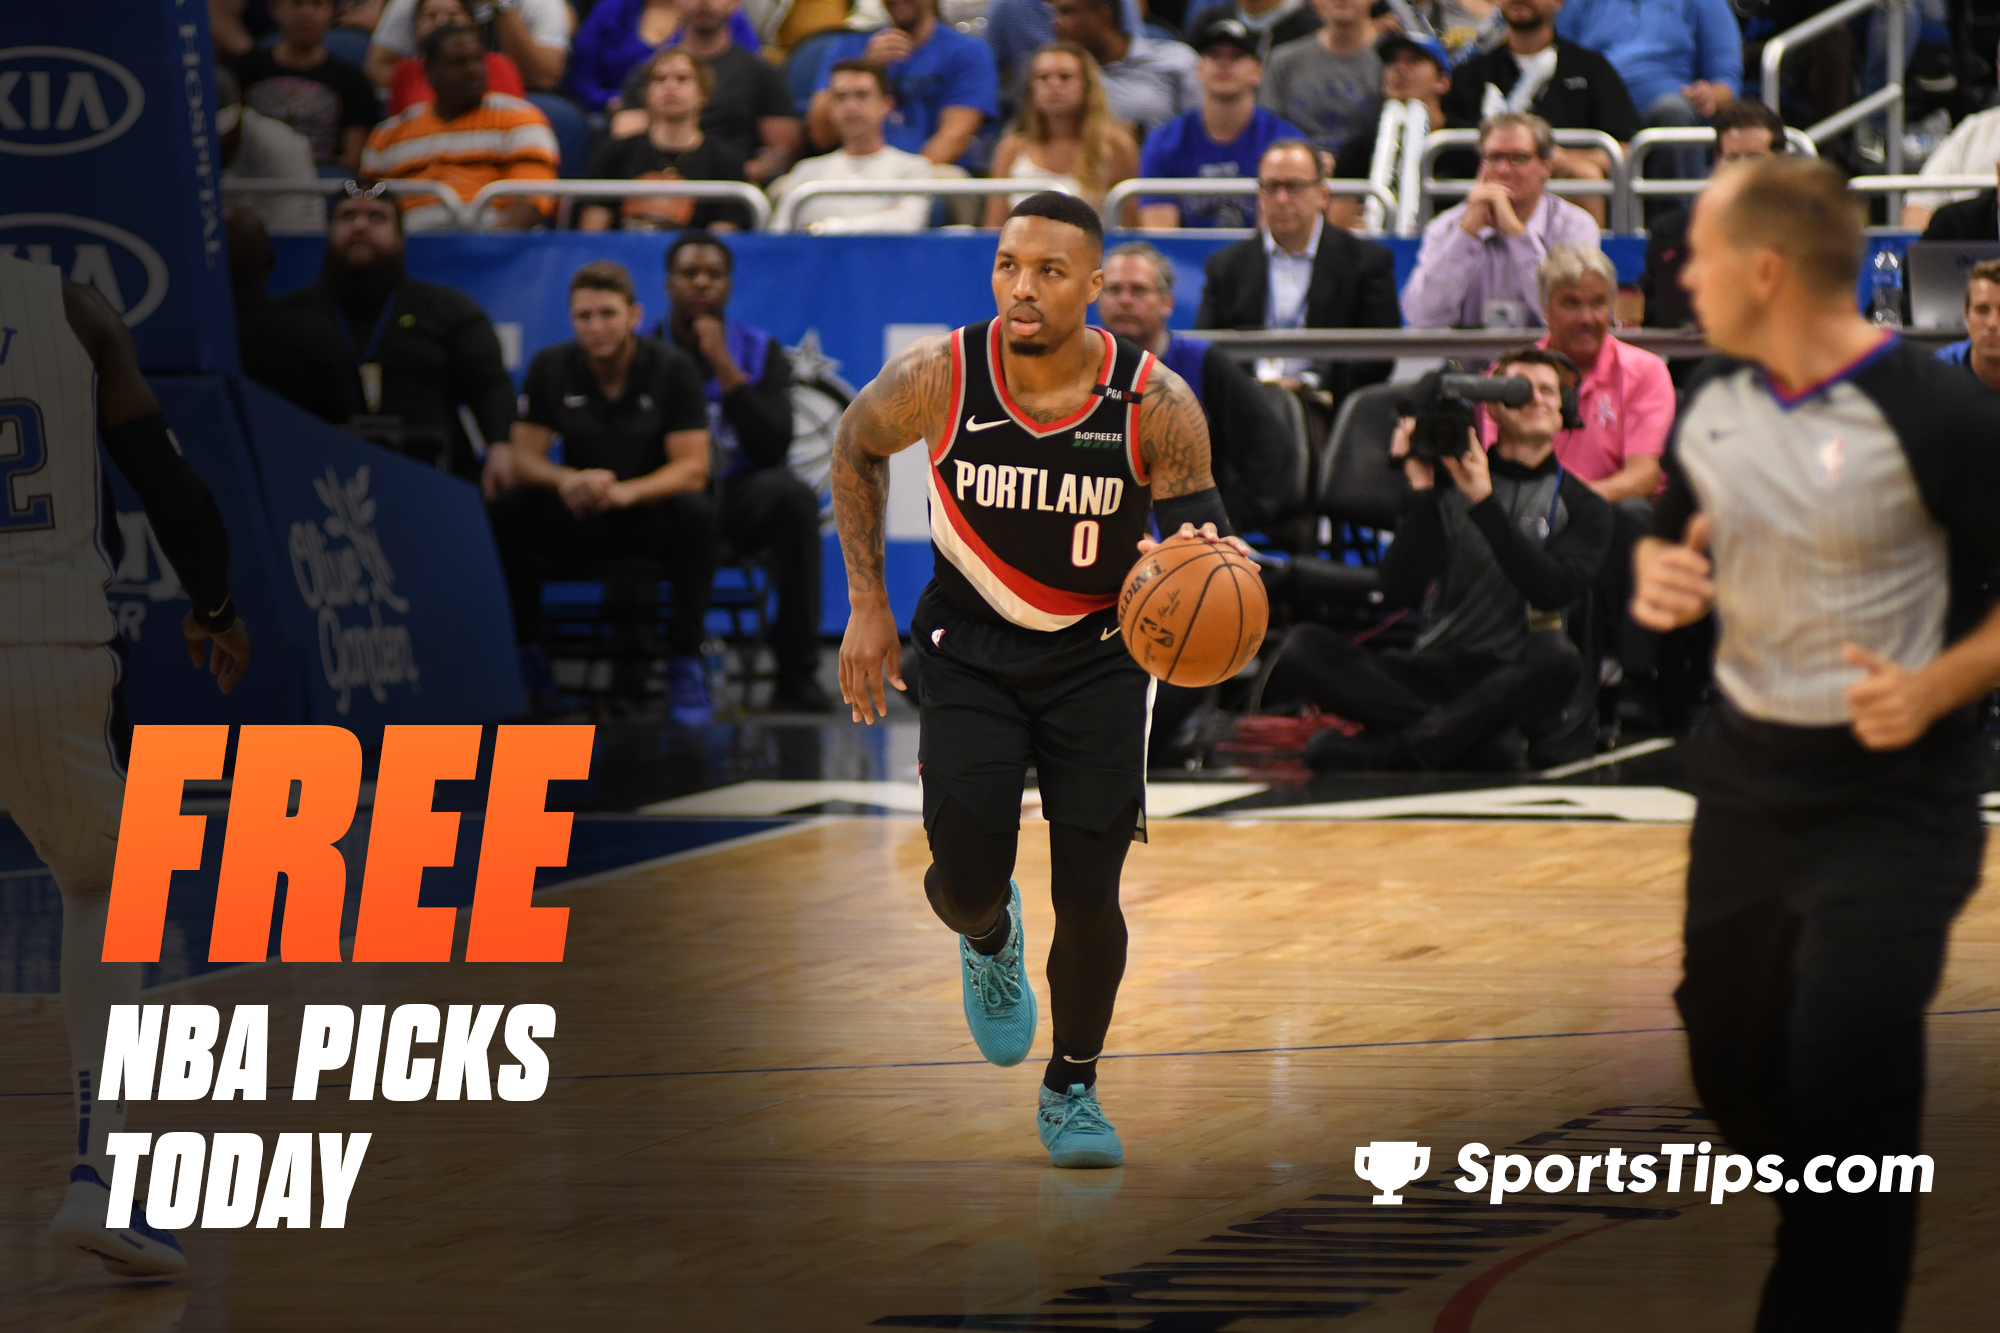 Free NBA Picks Today for Monday, February 22nd, 2021